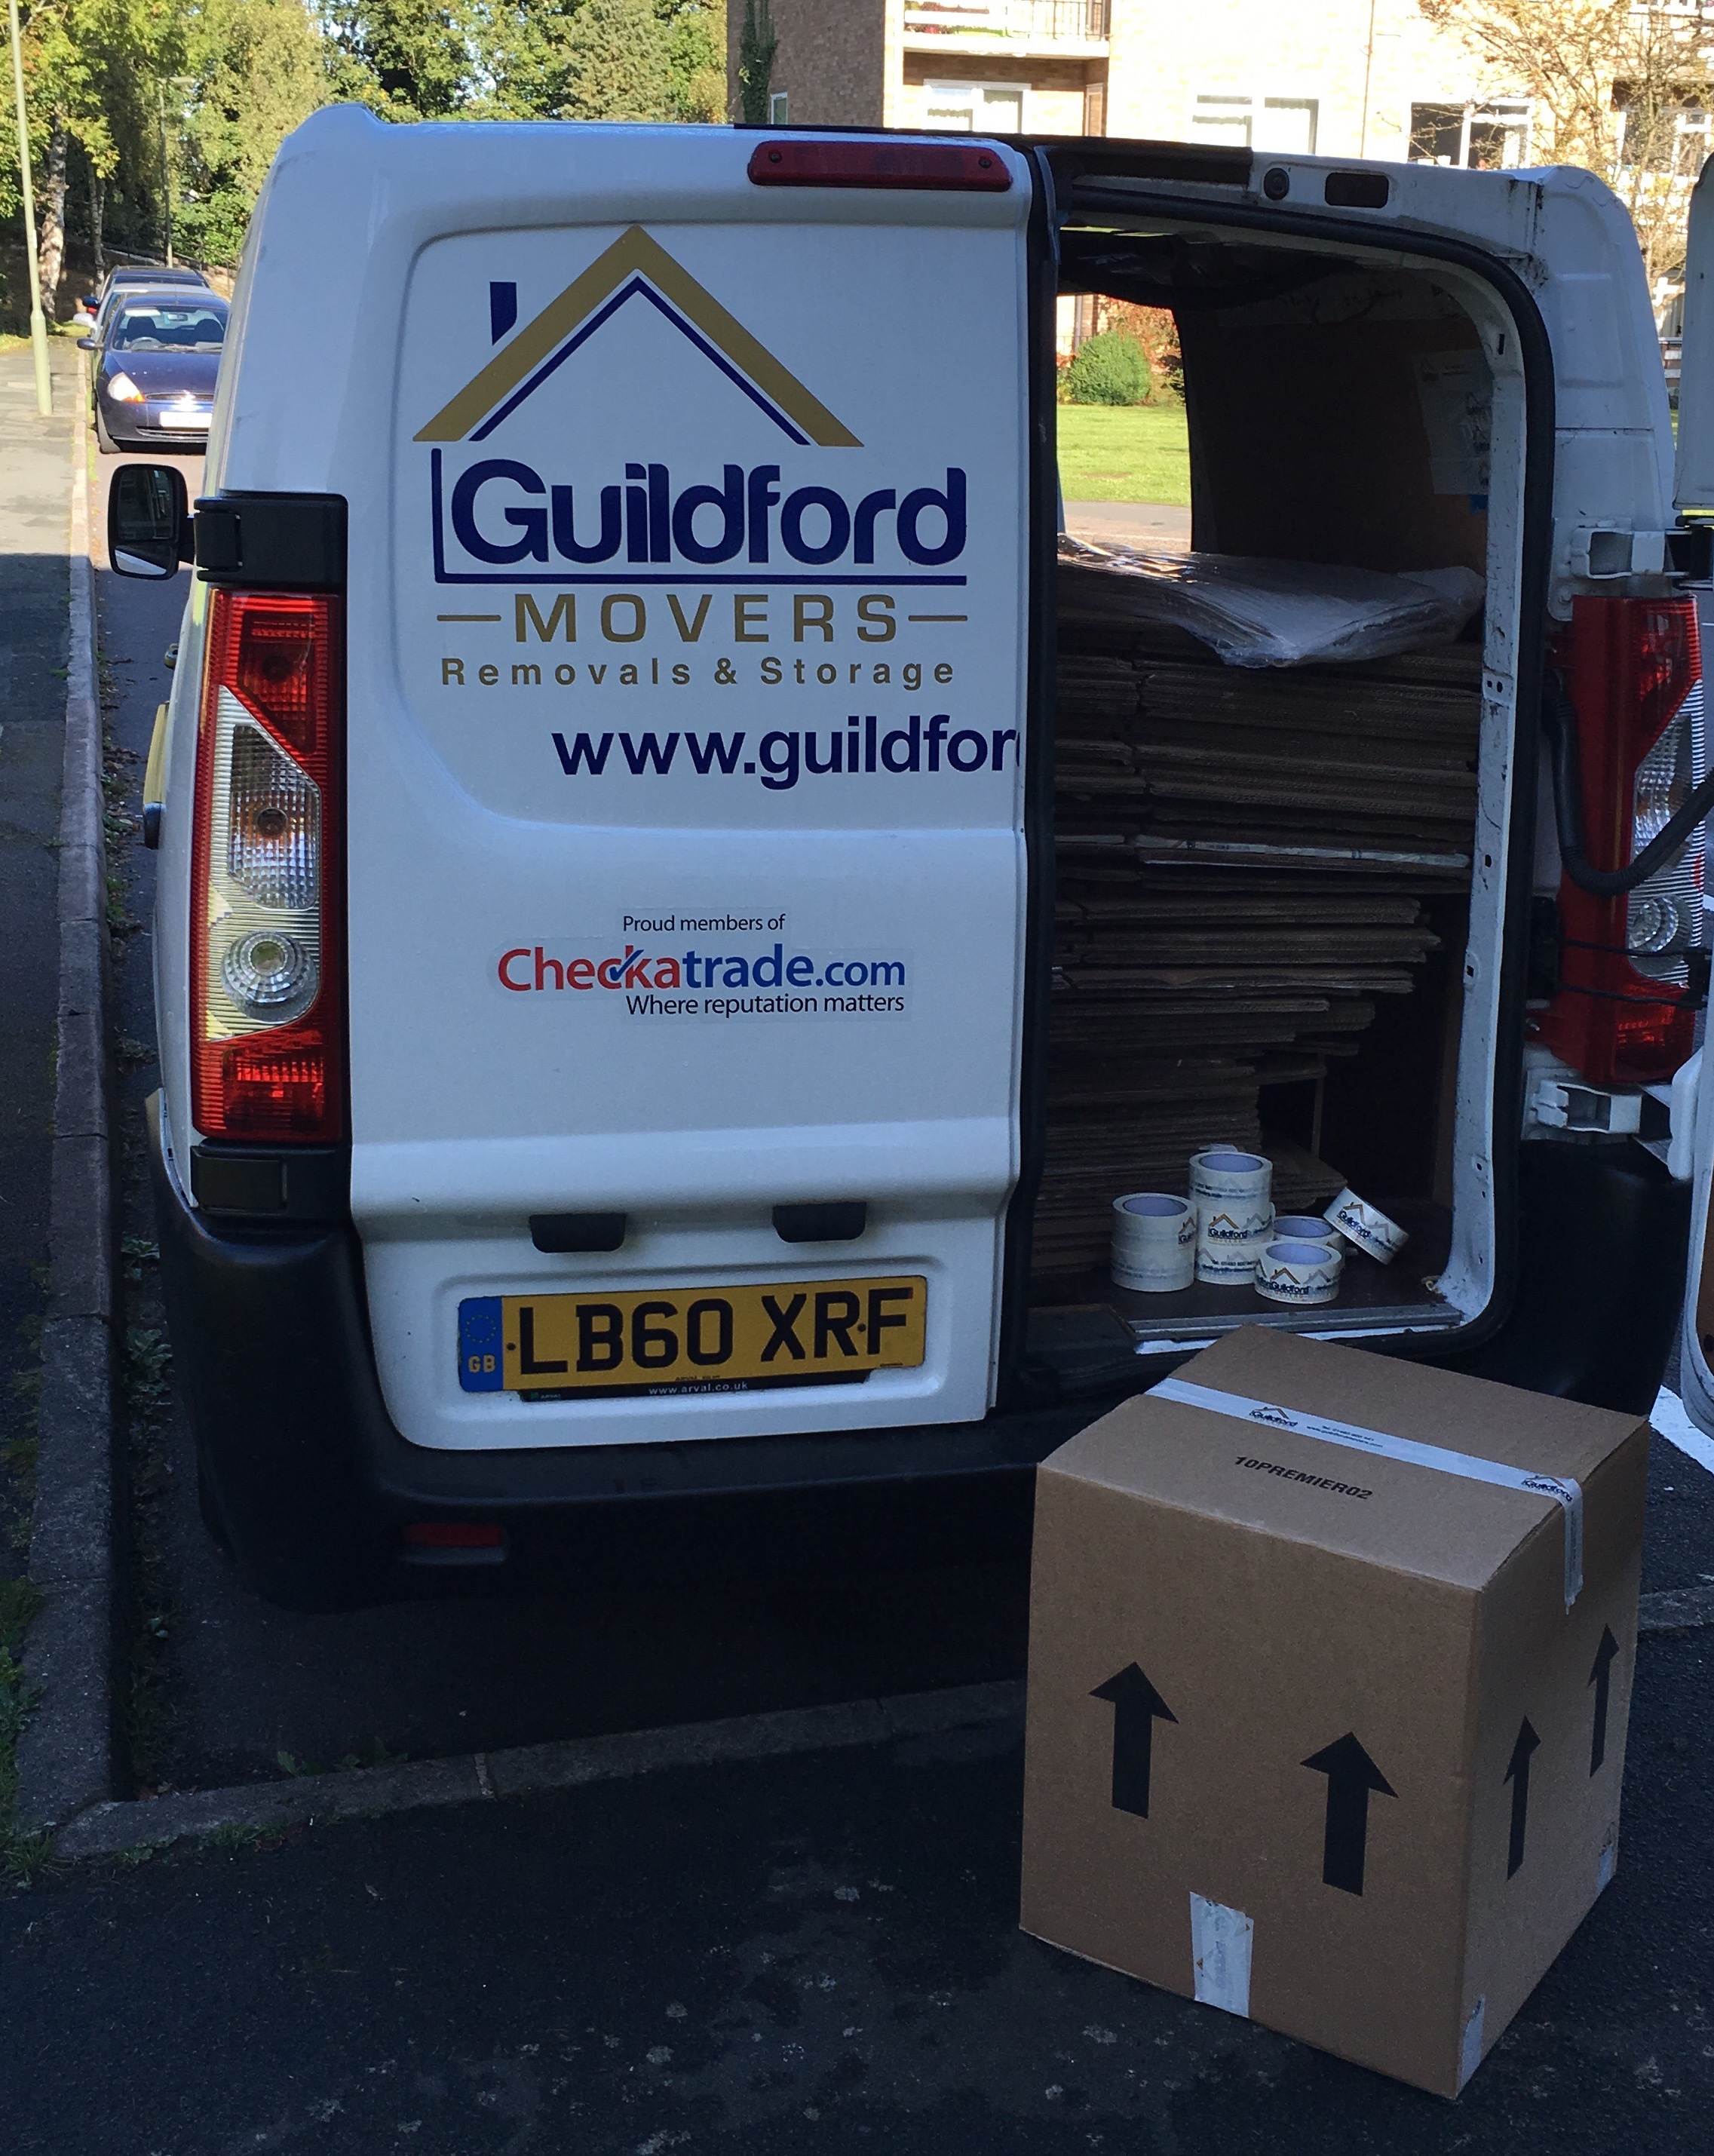 guildford movers packing service